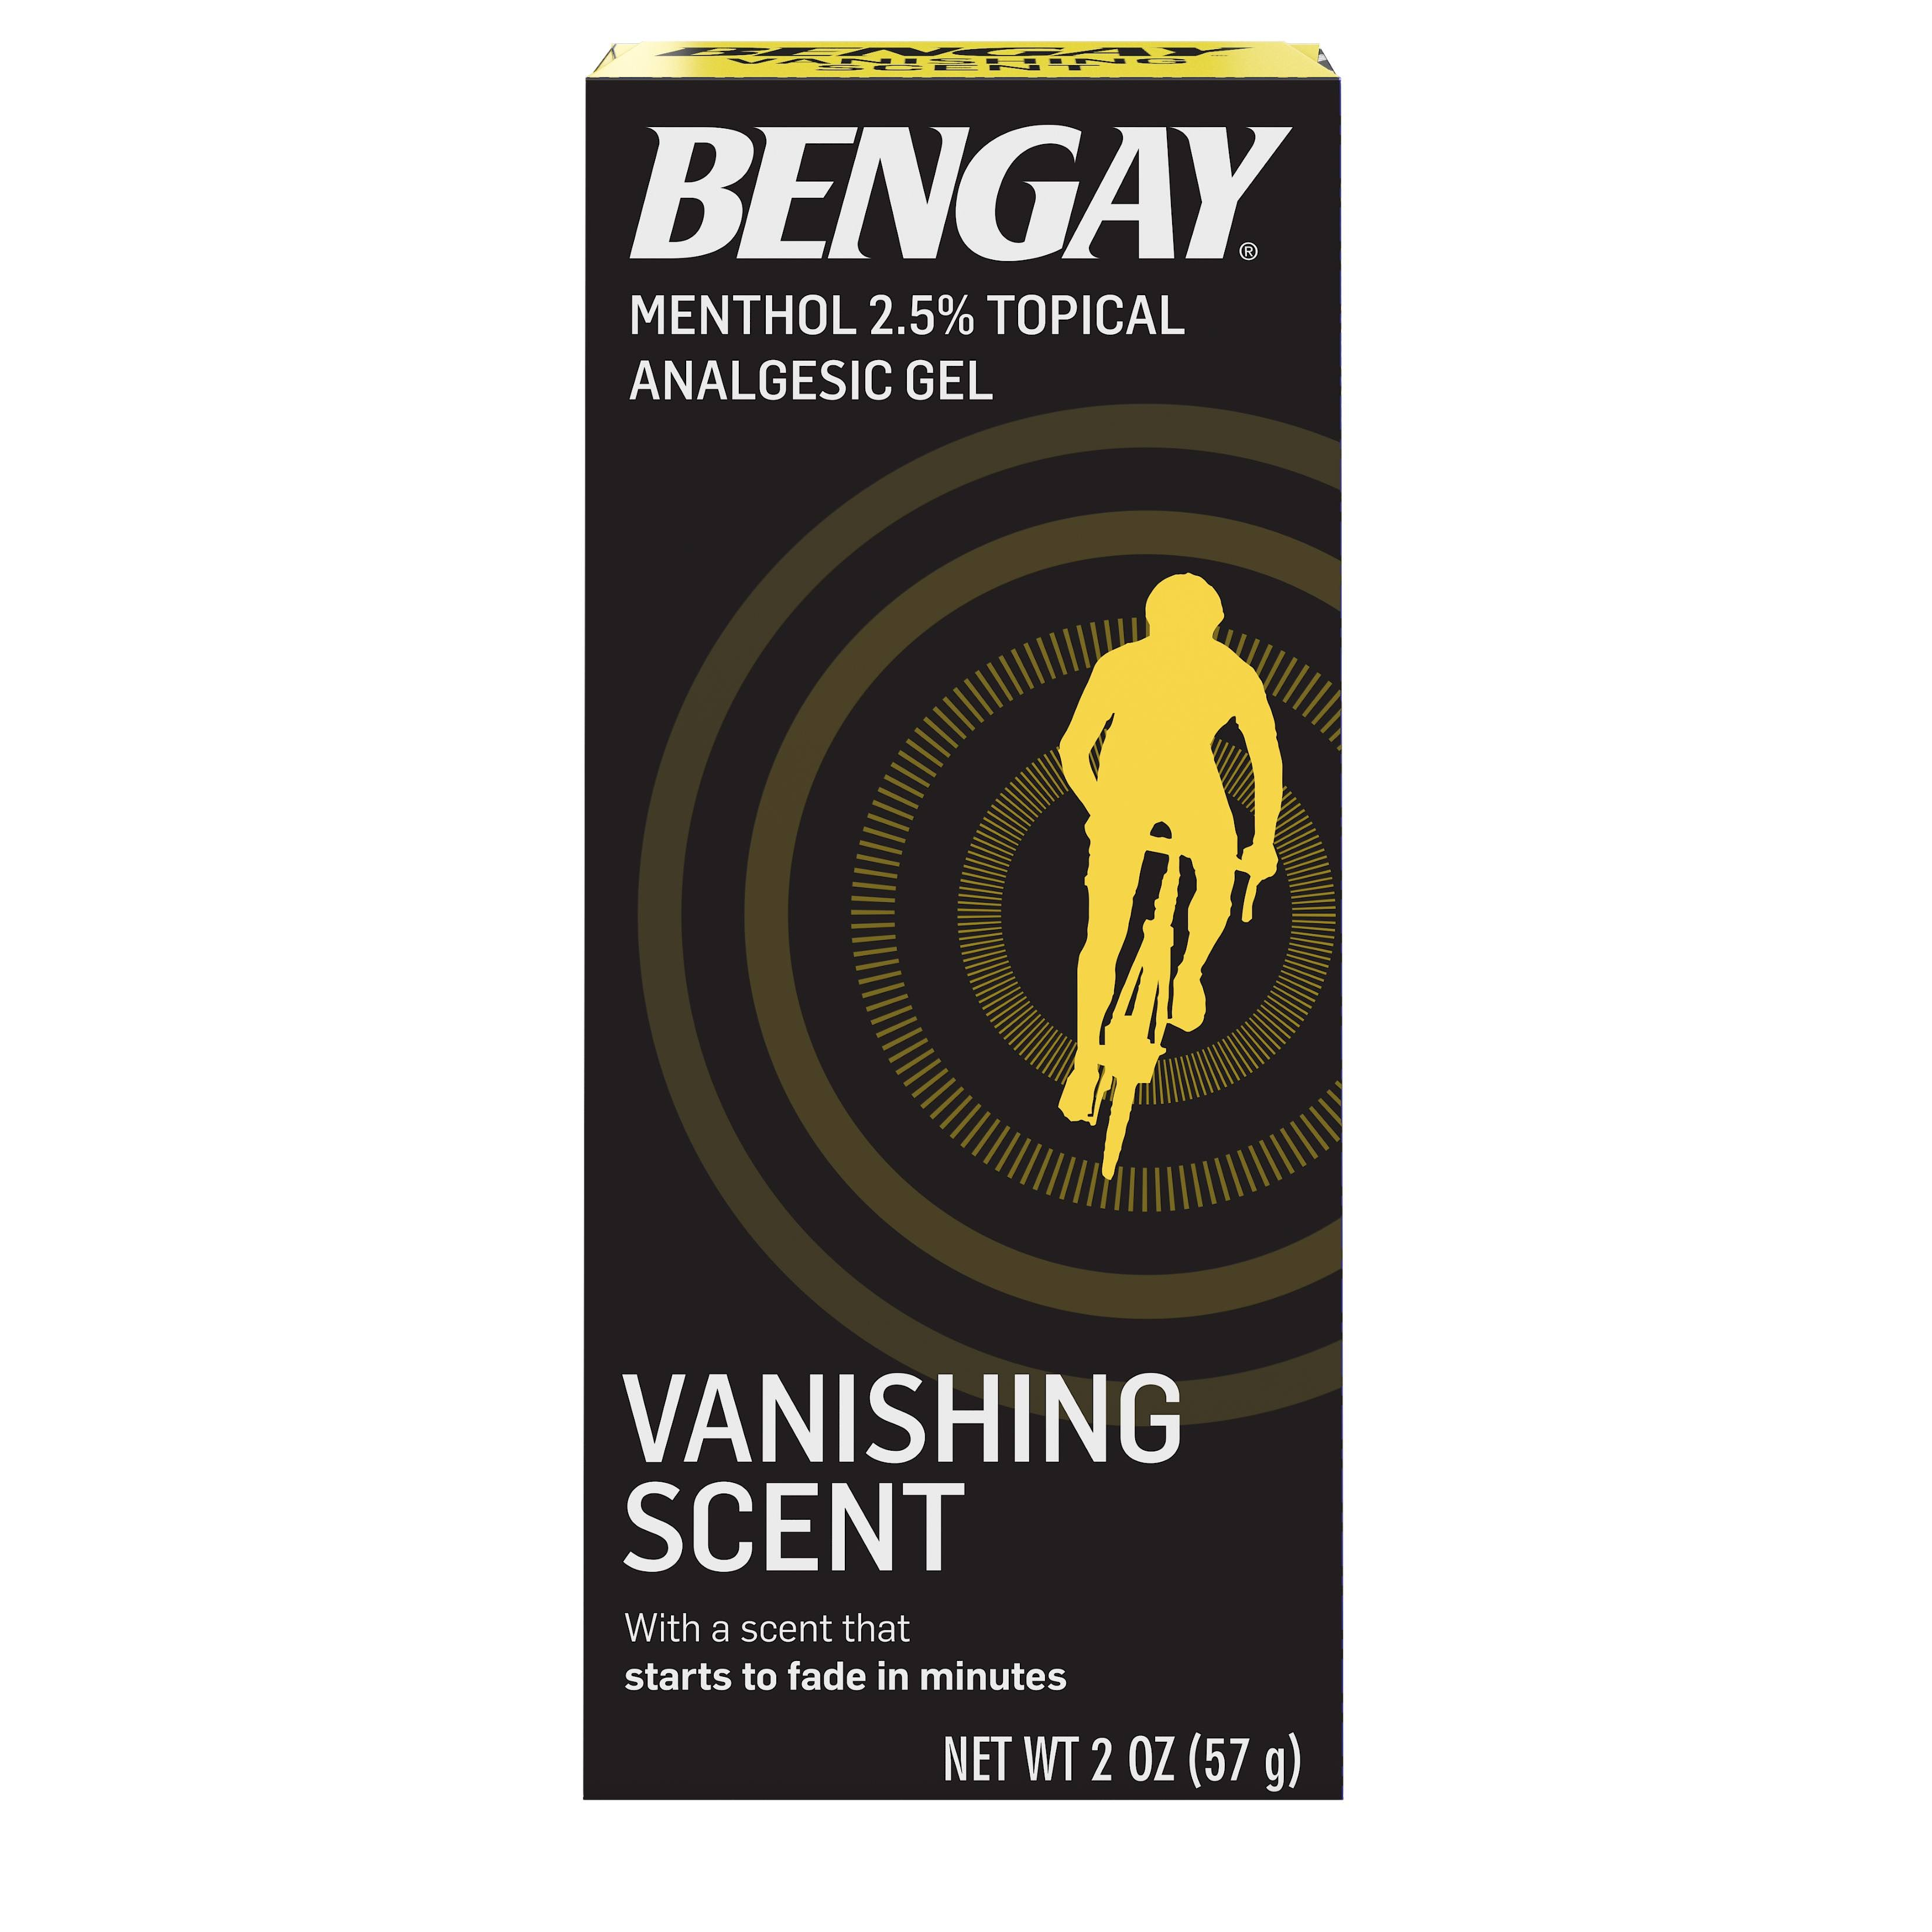 Bengay Vanishing Scent Analgesic Gel - 2oz